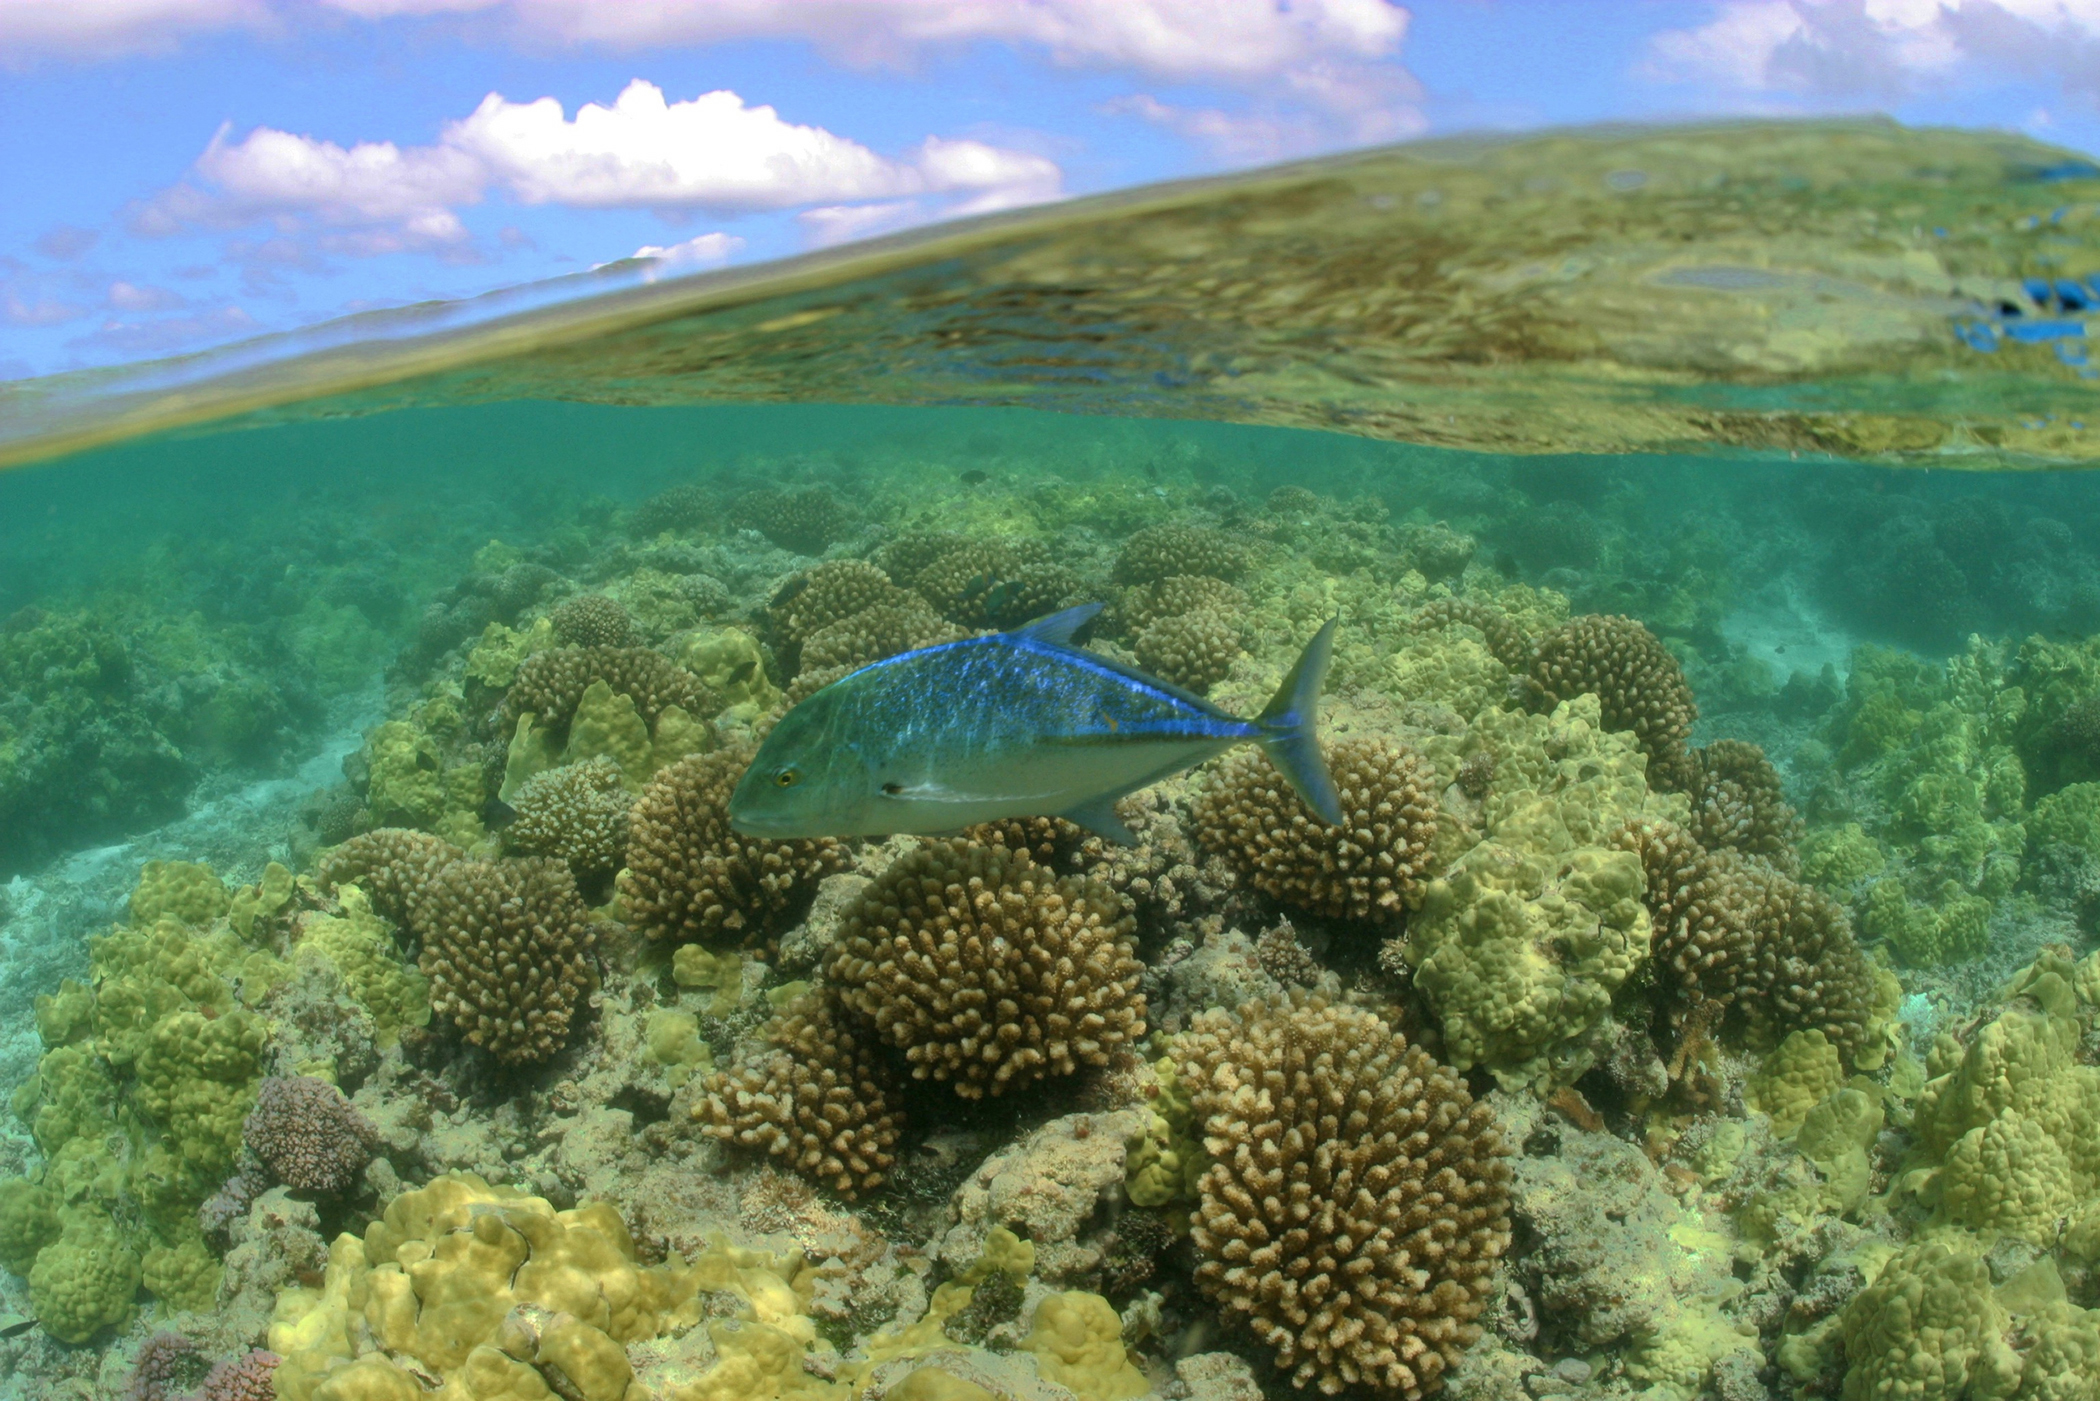 """President Obama quadrupled the size of the Papahānaumokuākea Marine National Monument off the coast of Hawaii, creating the world's largest marine protected area. When he declared National Oceans Month in June, he stated, """"Oceans and their nearby regions are also highly vulnerable to the effects of a changing climate -- a once-distant threat that is now very present and is affecting ecosystems and shoreline communities on every coast. Rising sea levels, coastal storms, and a growing risk of erosion and flooding are looming realities faced by seaside towns.""""(photo by James Watt)."""